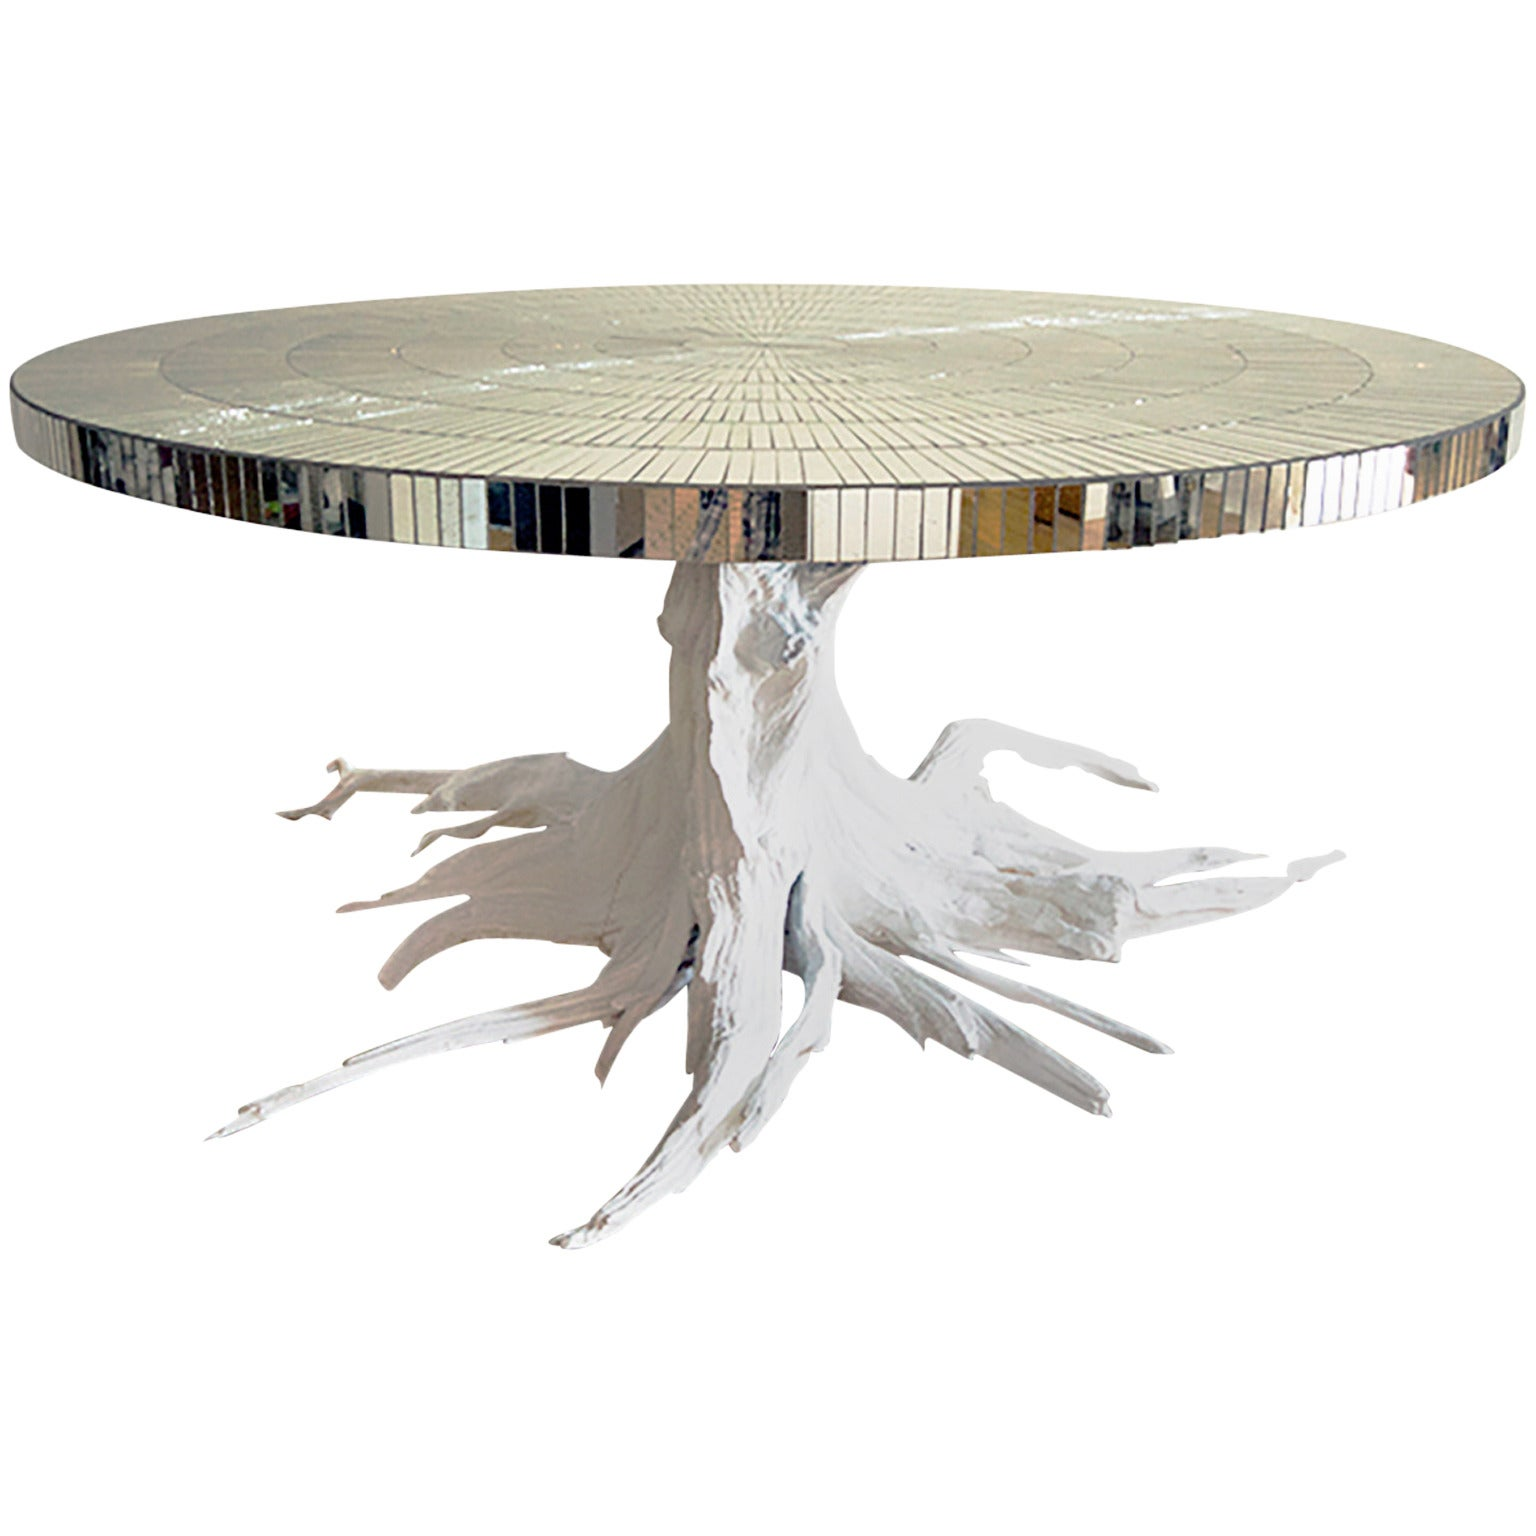 Custom Driftwood Root Table with Mosaic Mirror Top